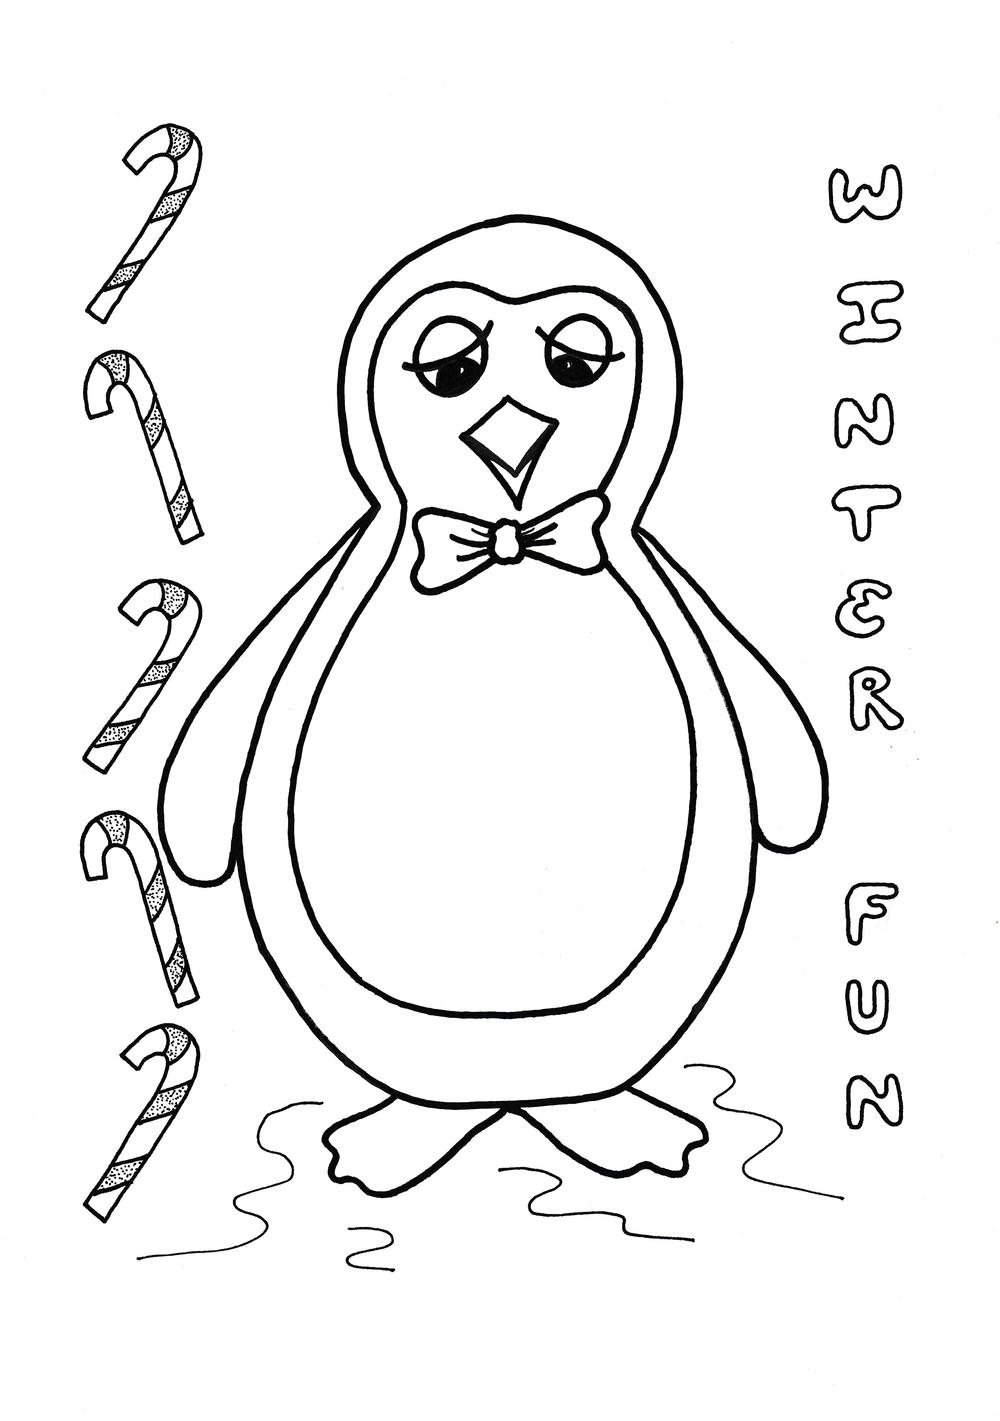 Toby the Penguin Kids Coloring Page | AllFreeKidsCrafts.com